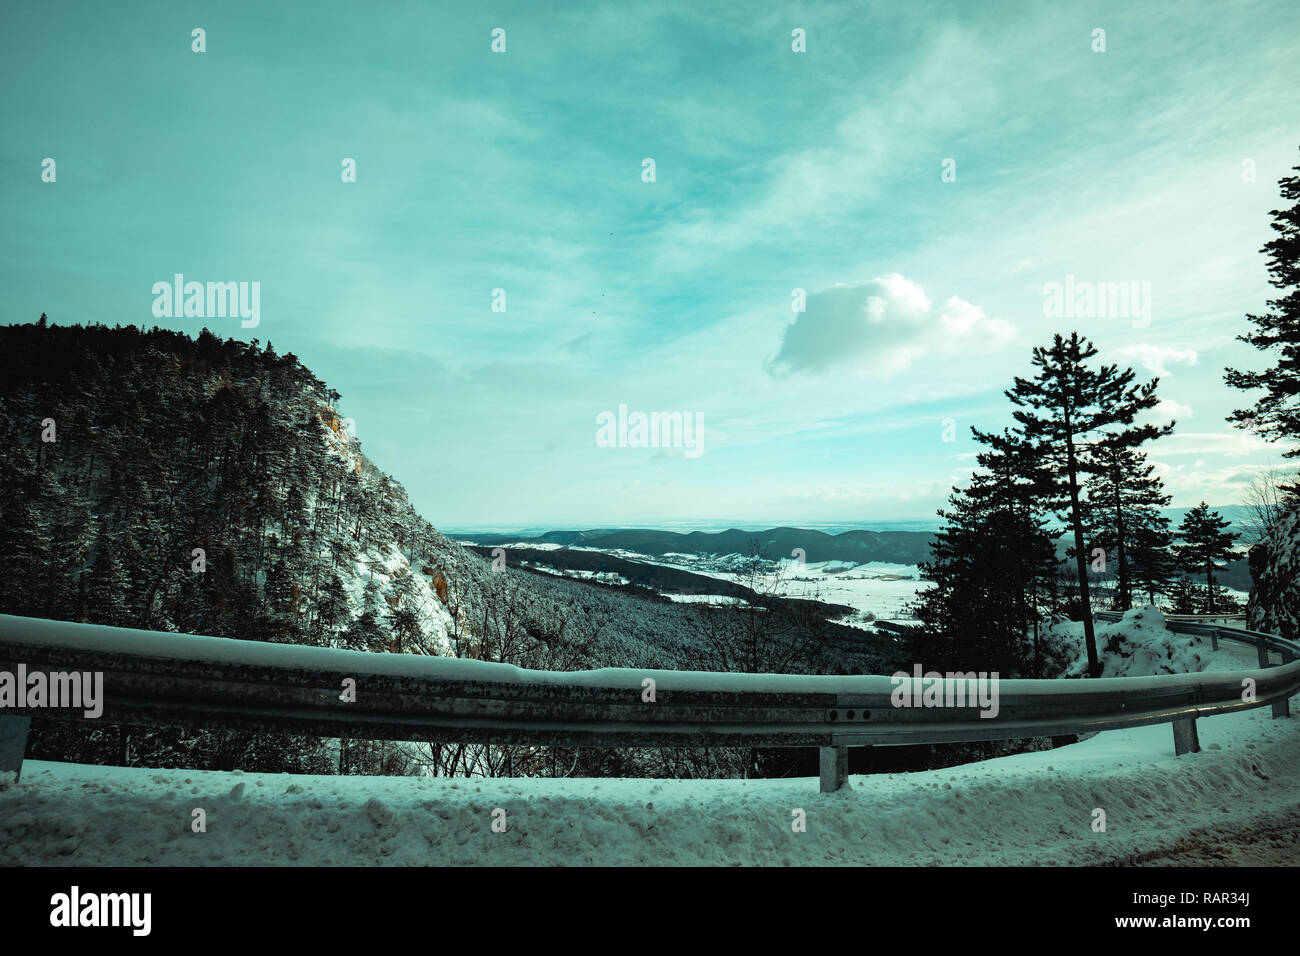 The road in the winter mountains in the background in lower austria hohe wand ( High Wall ) - Stock Image